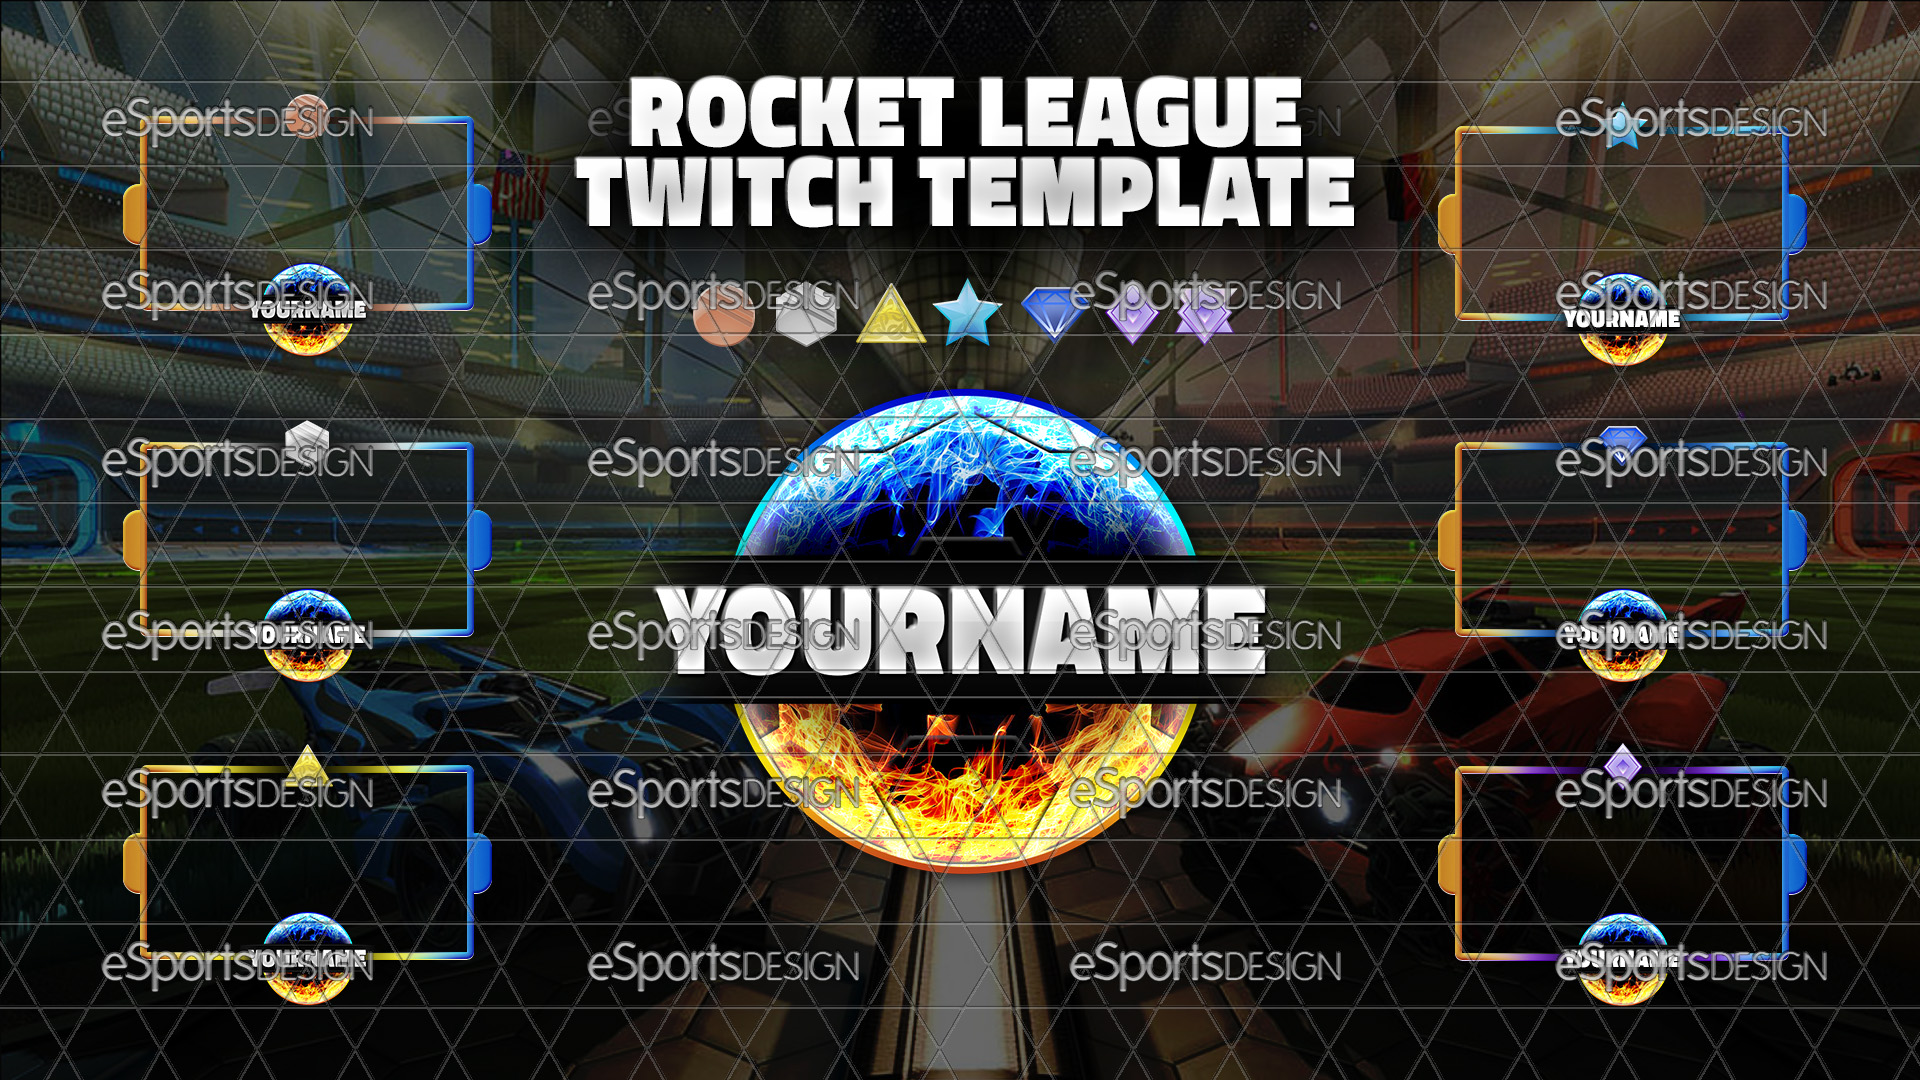 Rocket League Twitch Stream Template Package Esportsdesign